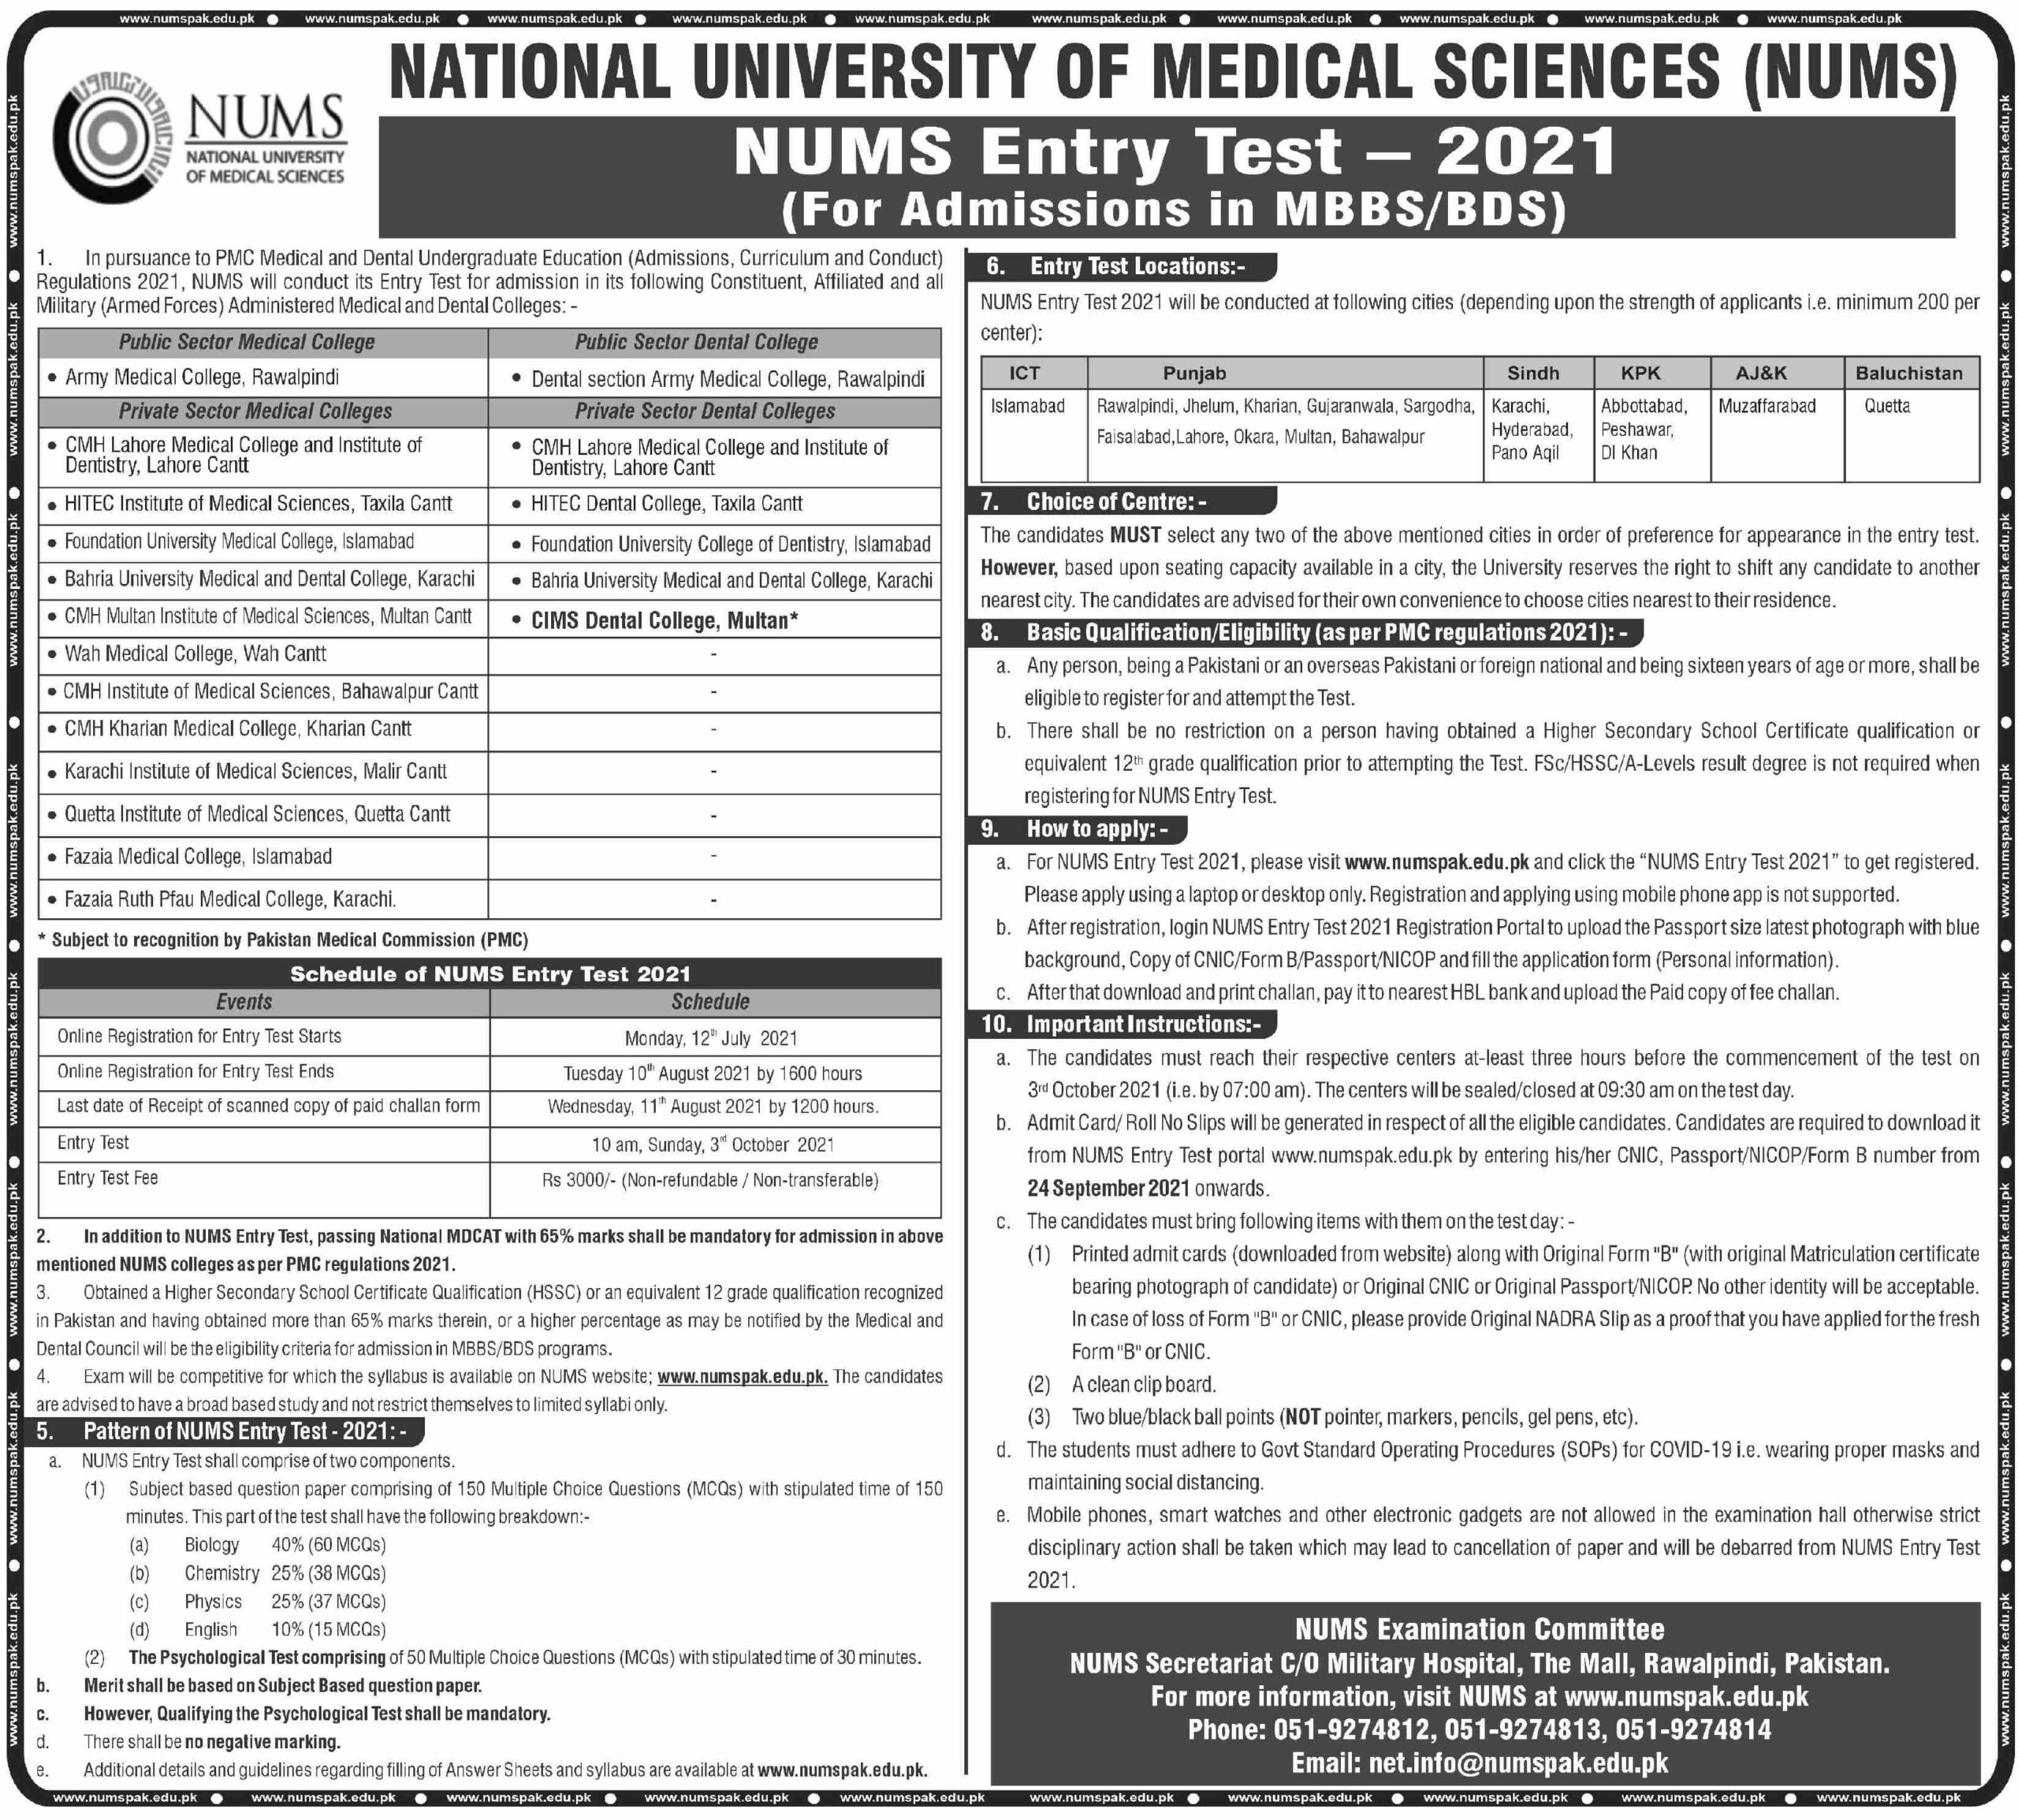 NUMS Entry Test July 2021 for MBBS BDS Apply Online scaled